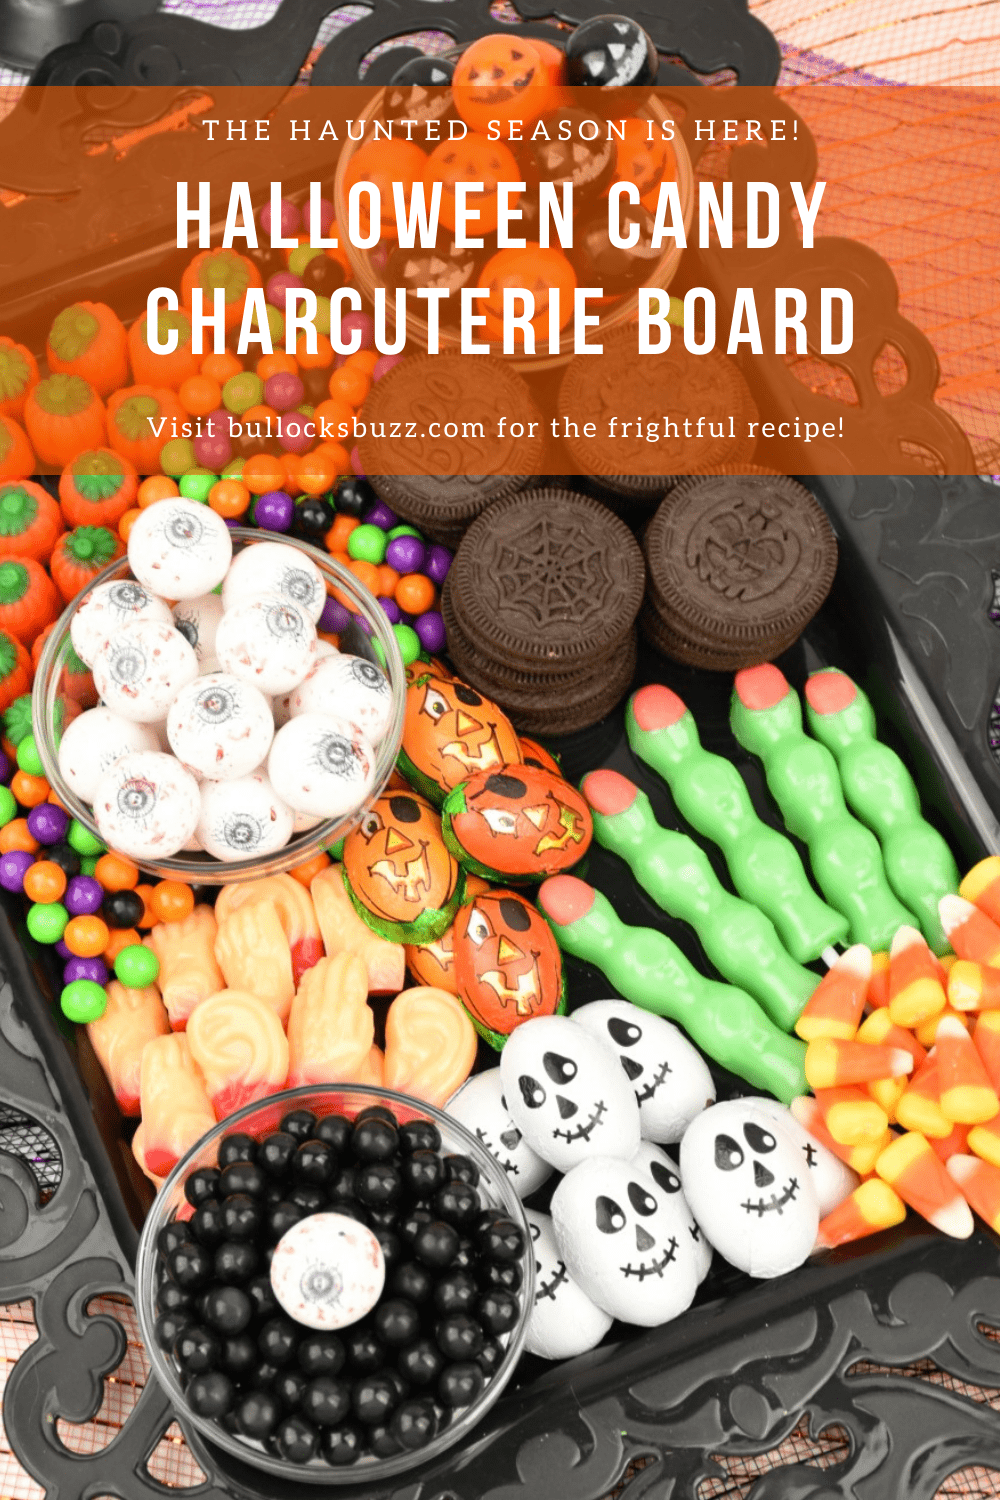 This chillingly cute Halloween Candy Charcuterie Board is one of my favorite dessert charcuterie boards to make! Filled with traditional Halloween candies, this frightfully sweet Dessert Charcuterie Board for Halloween has it all!